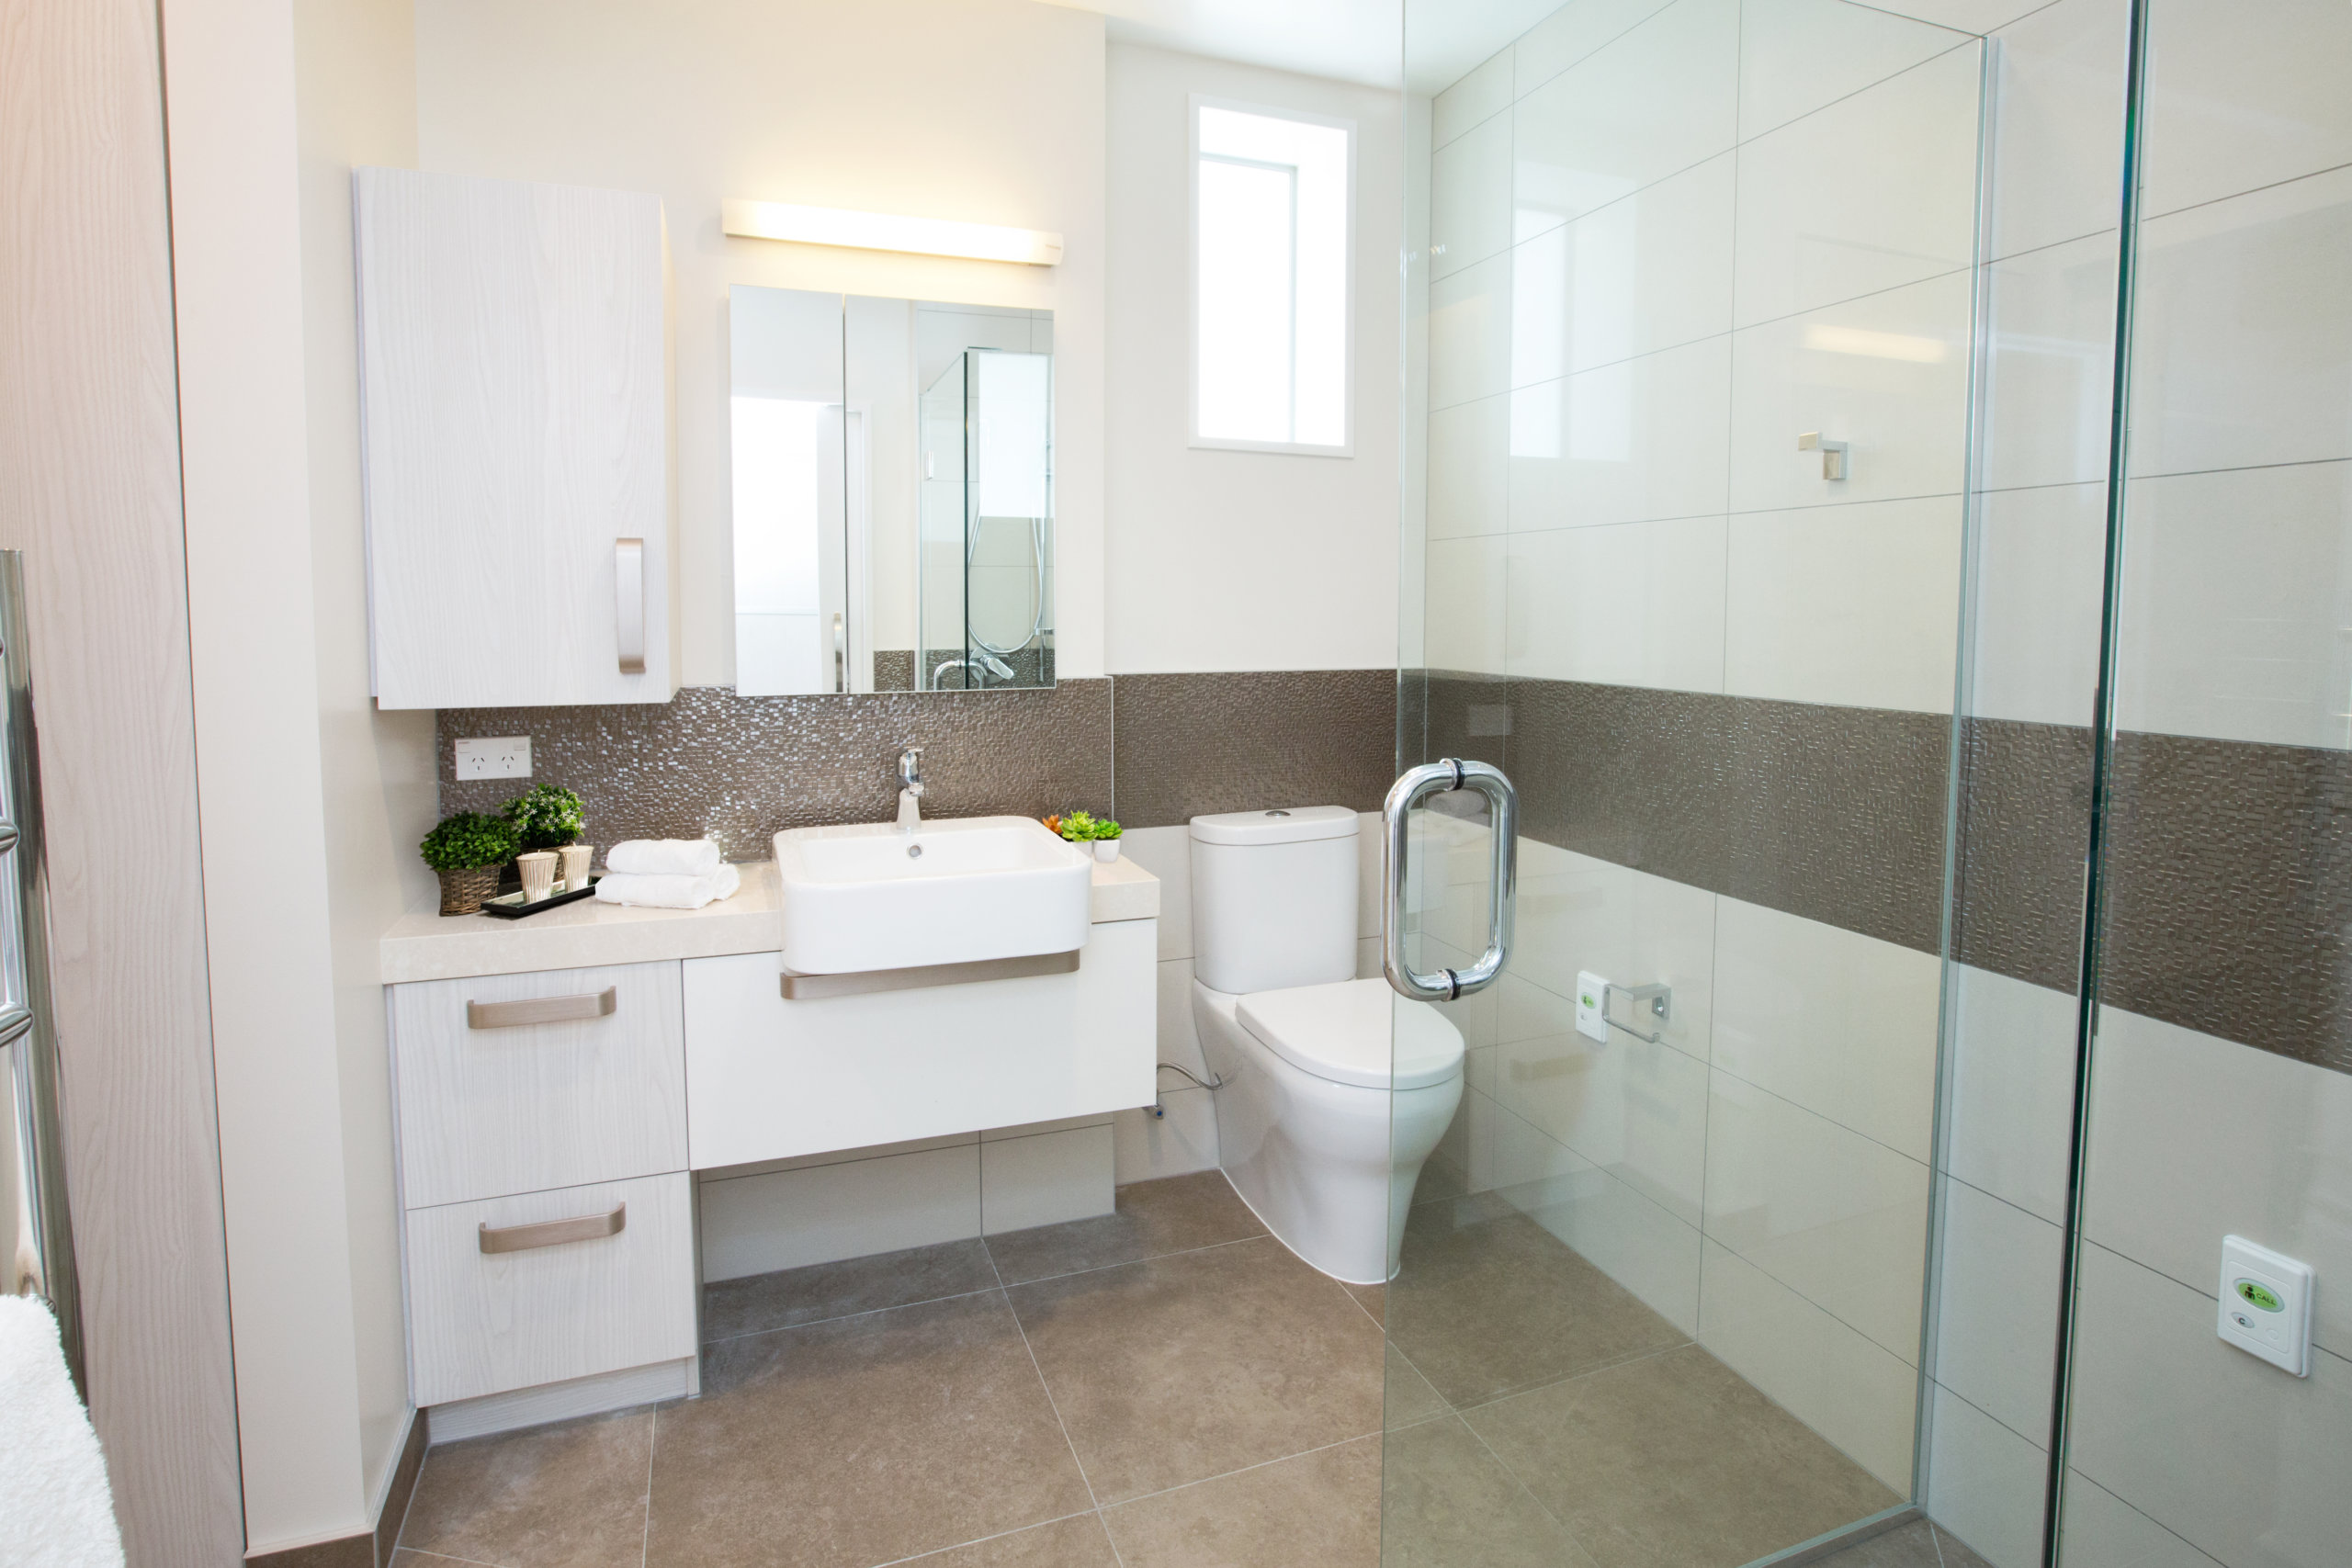 Meadowbank apartment bathroom with shower and toilet